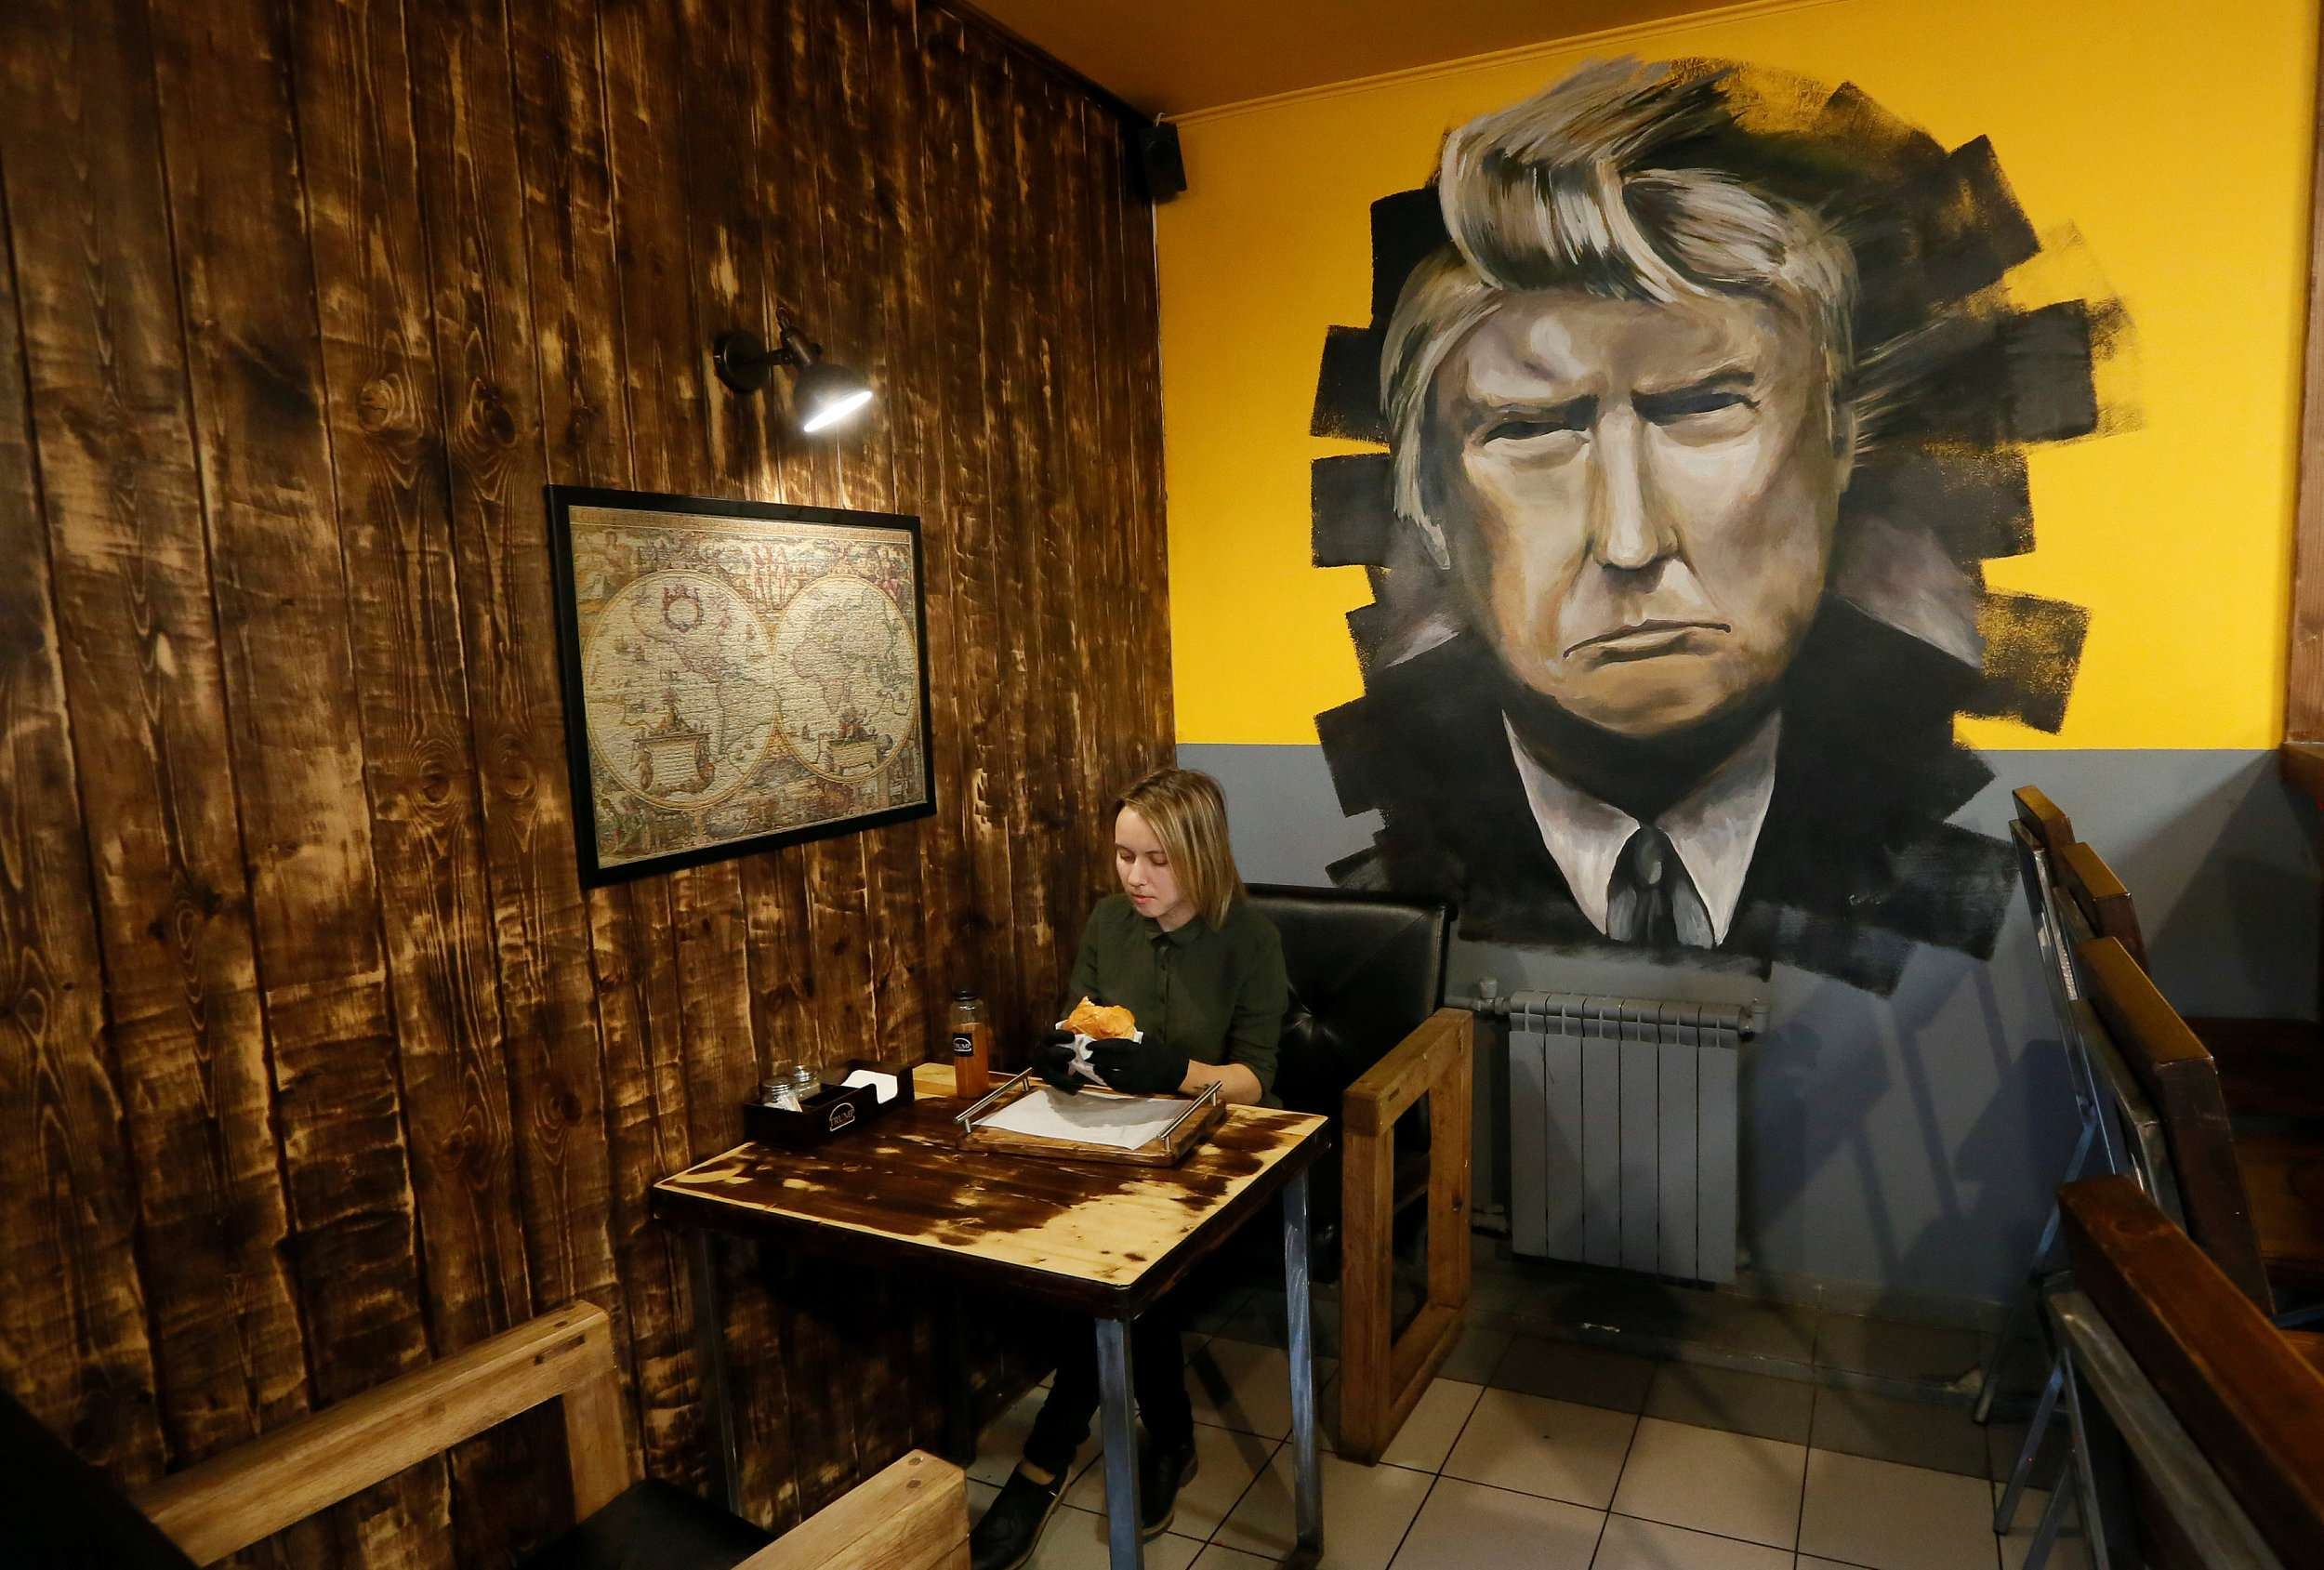 Trump burger joint draws customers in Siberia